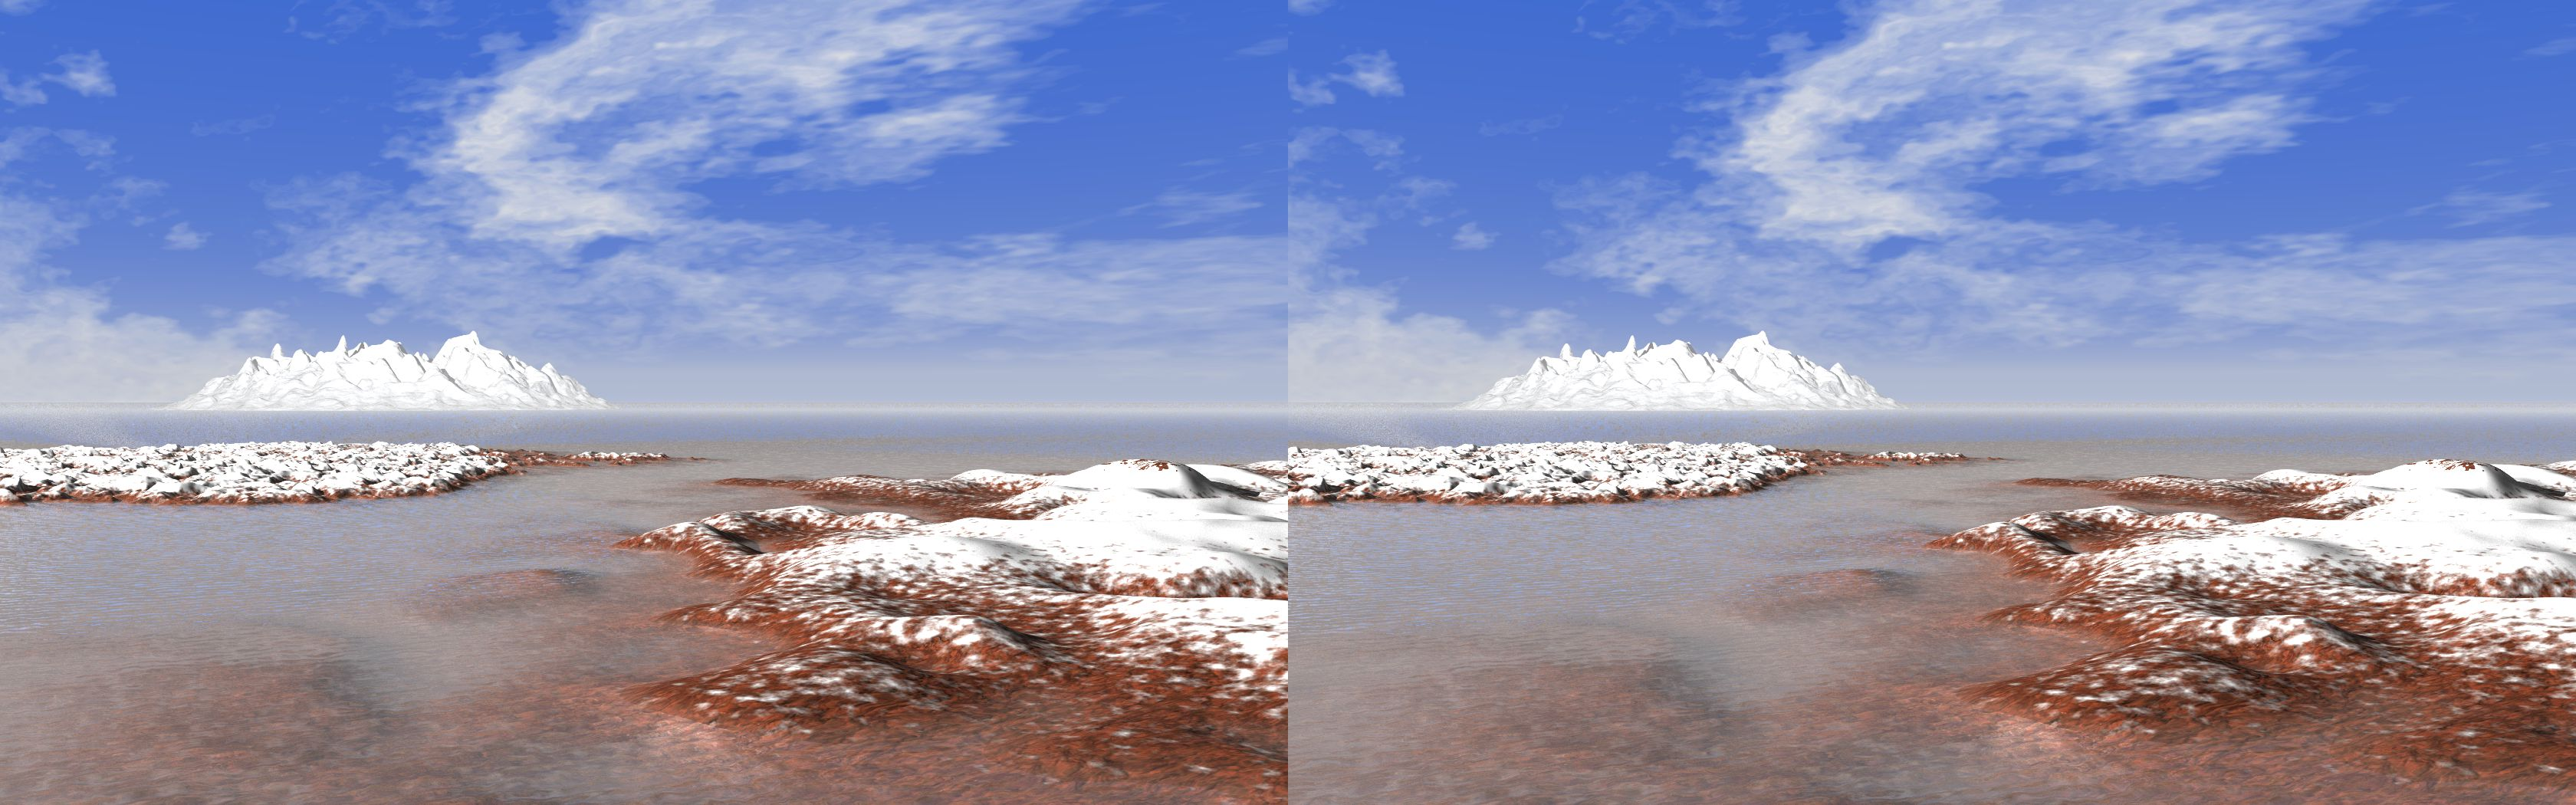 Silent Ice Coast - 3D stereo JPS image